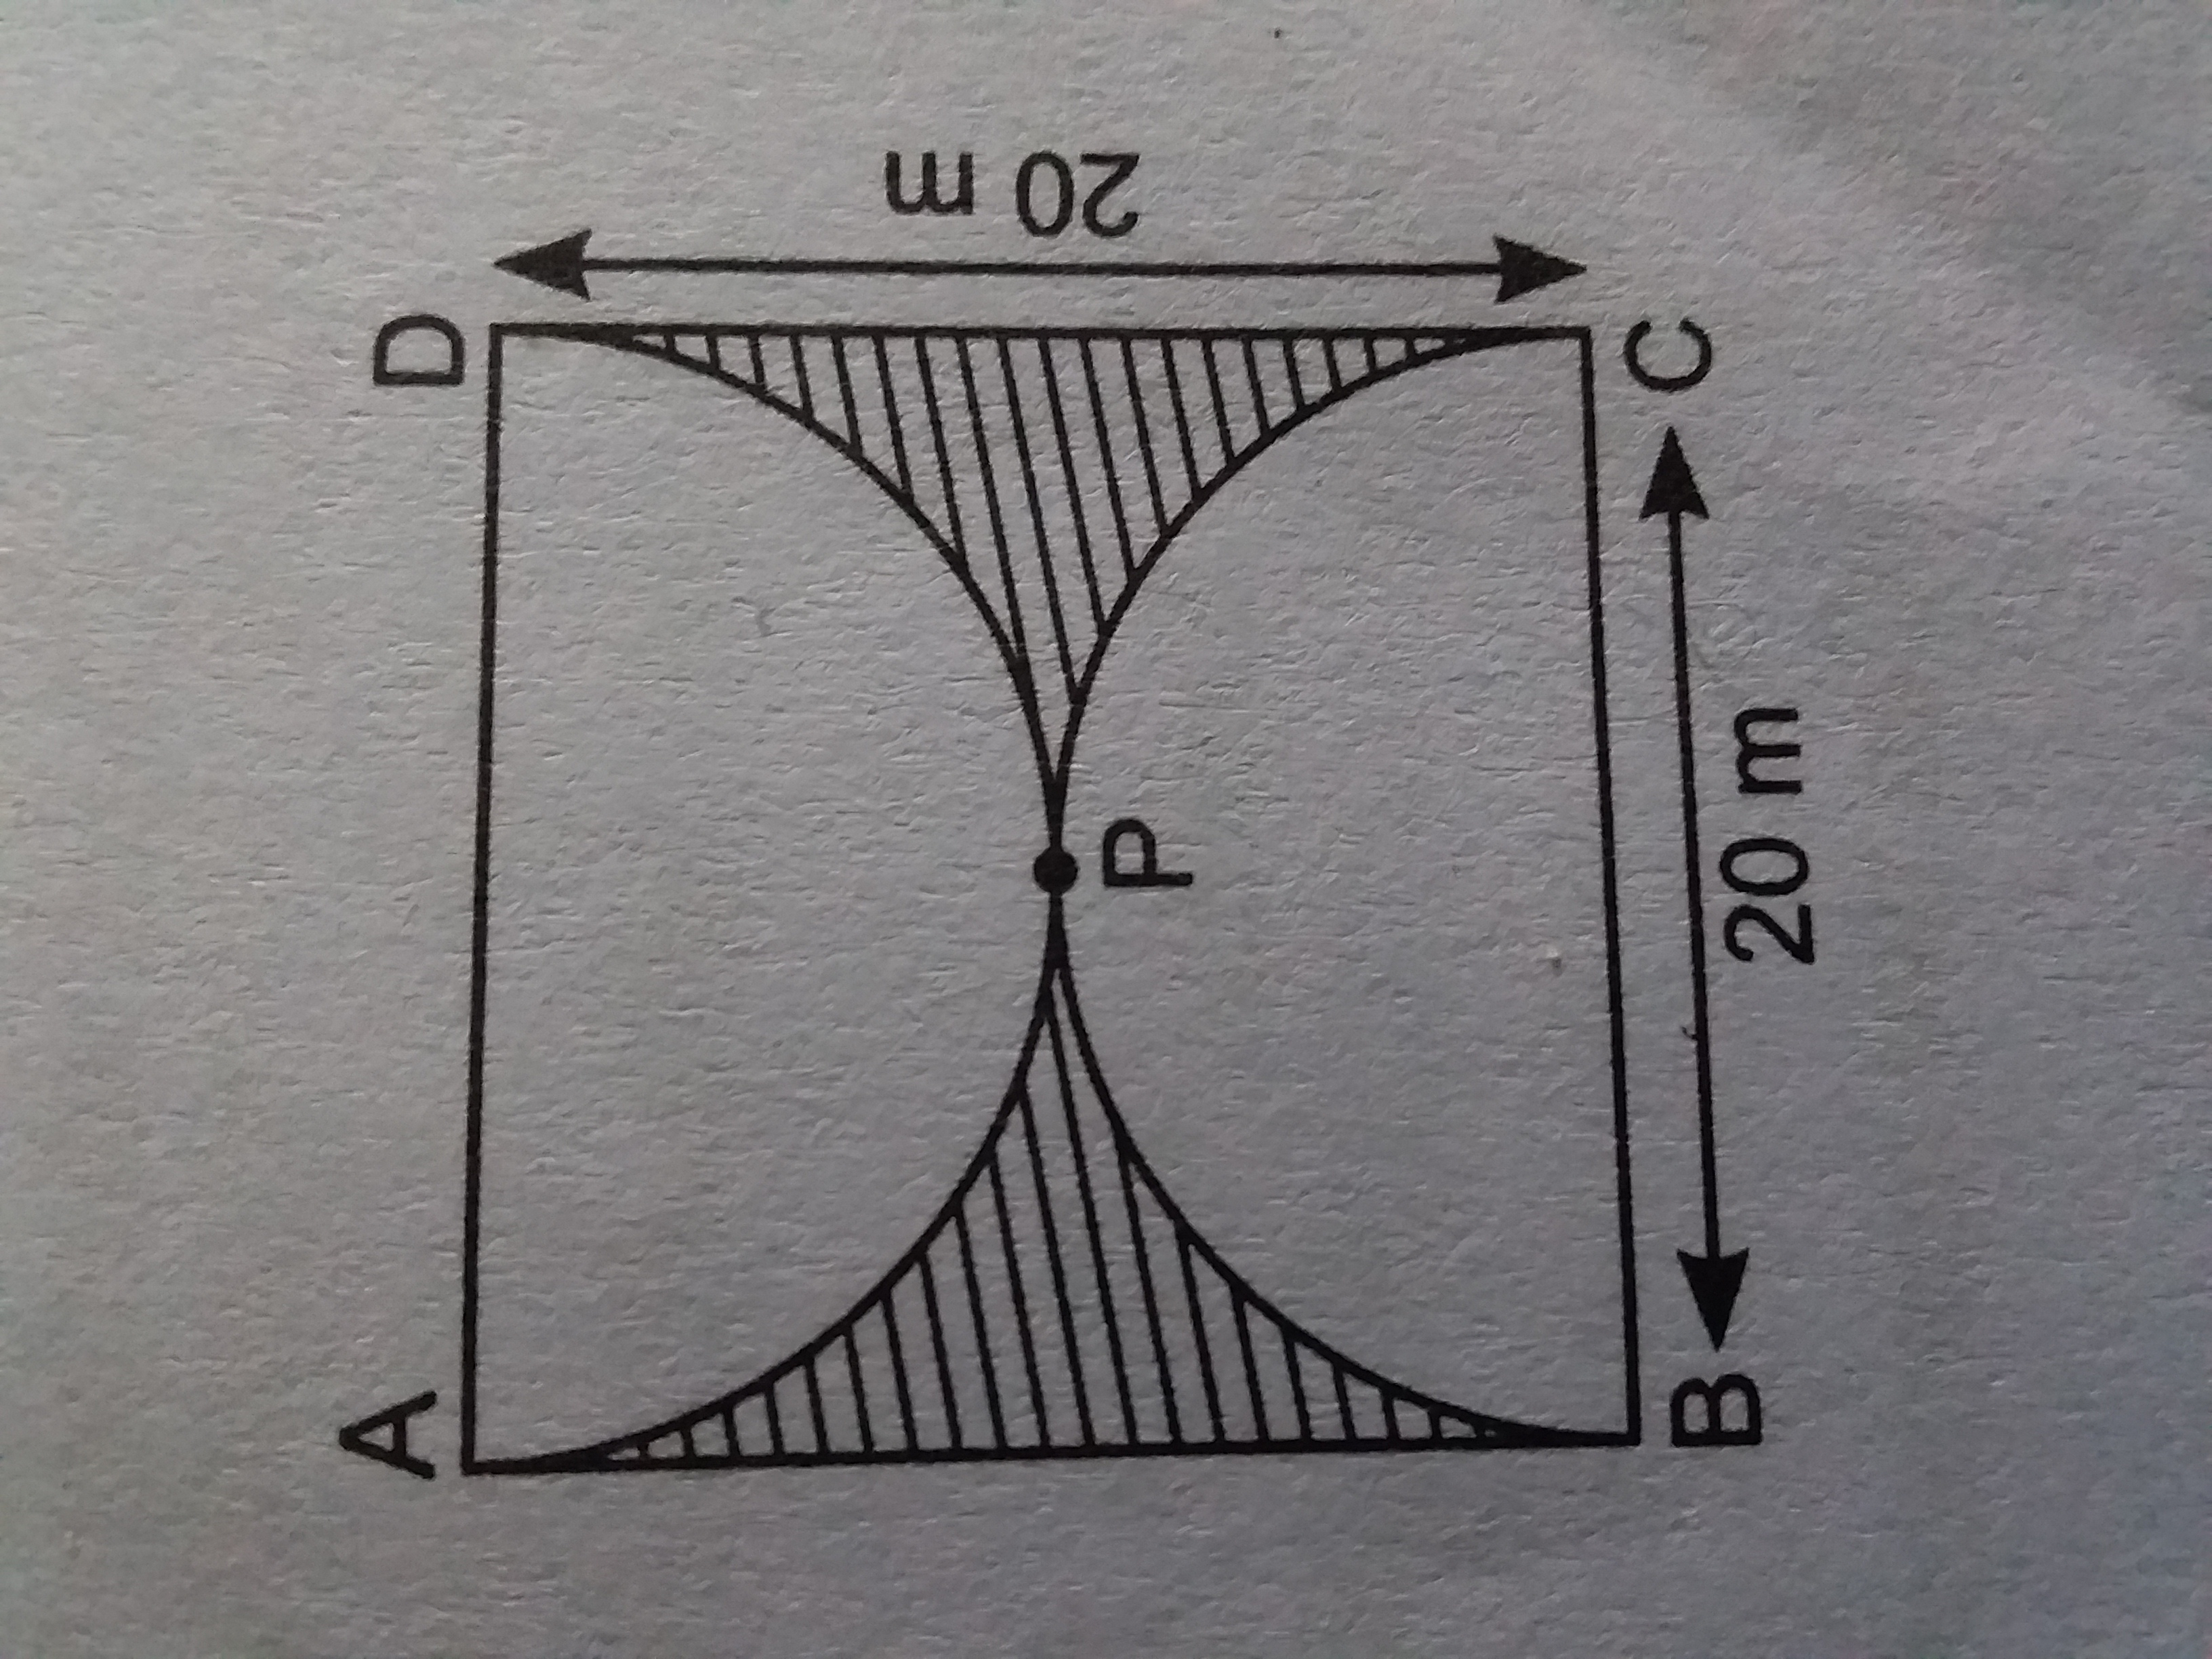 Find The Area Of The Shaded Region In The Given Figure If